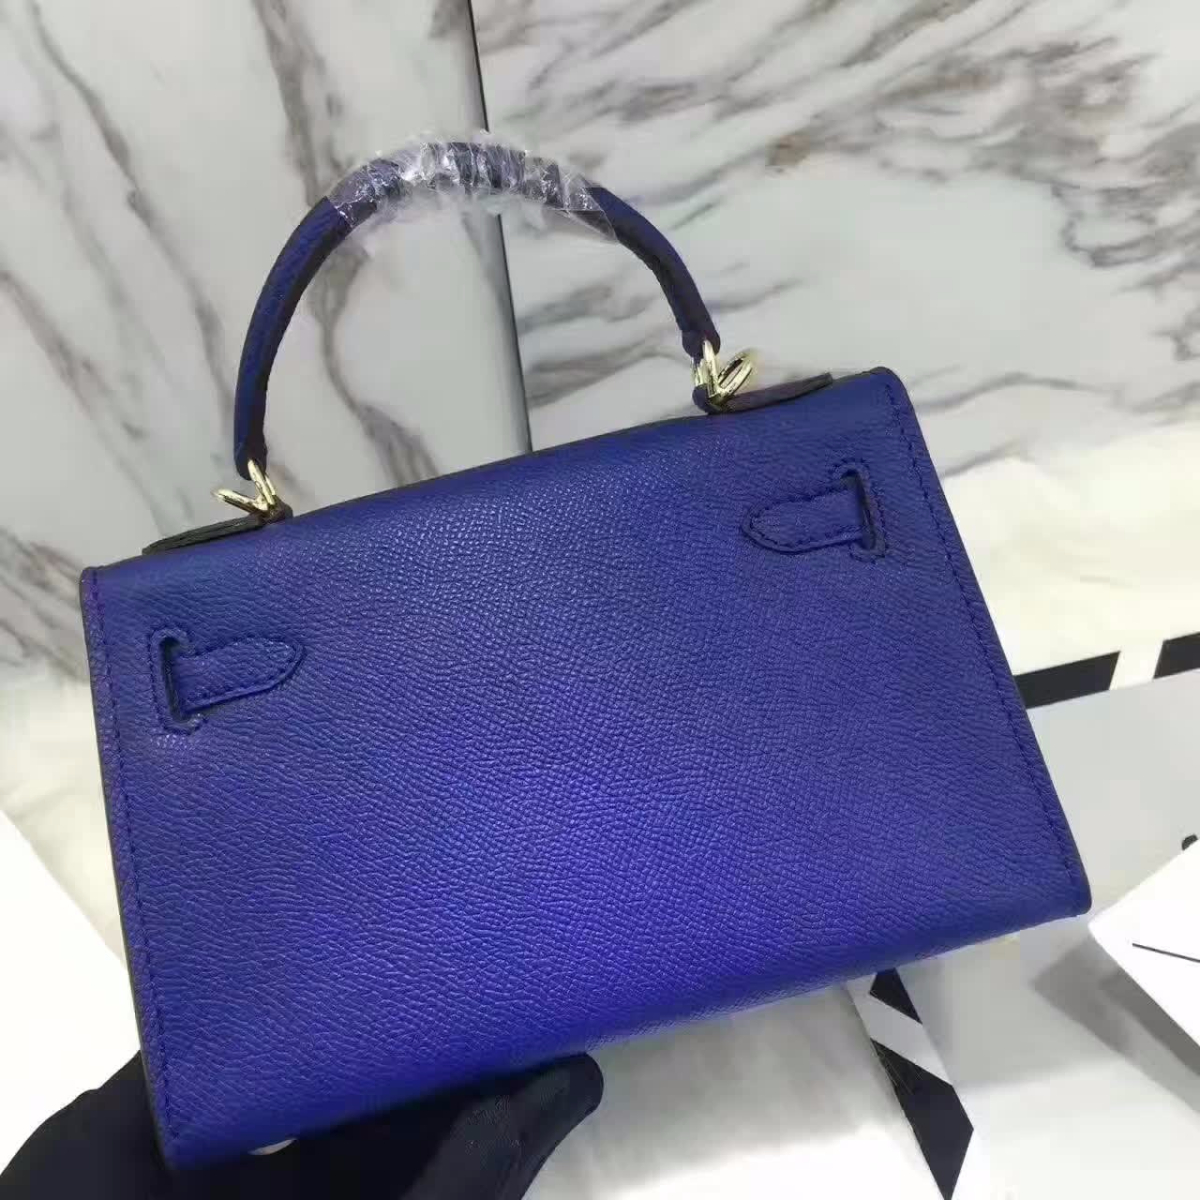 Hermes Mini Kelly Bag hhem589_1